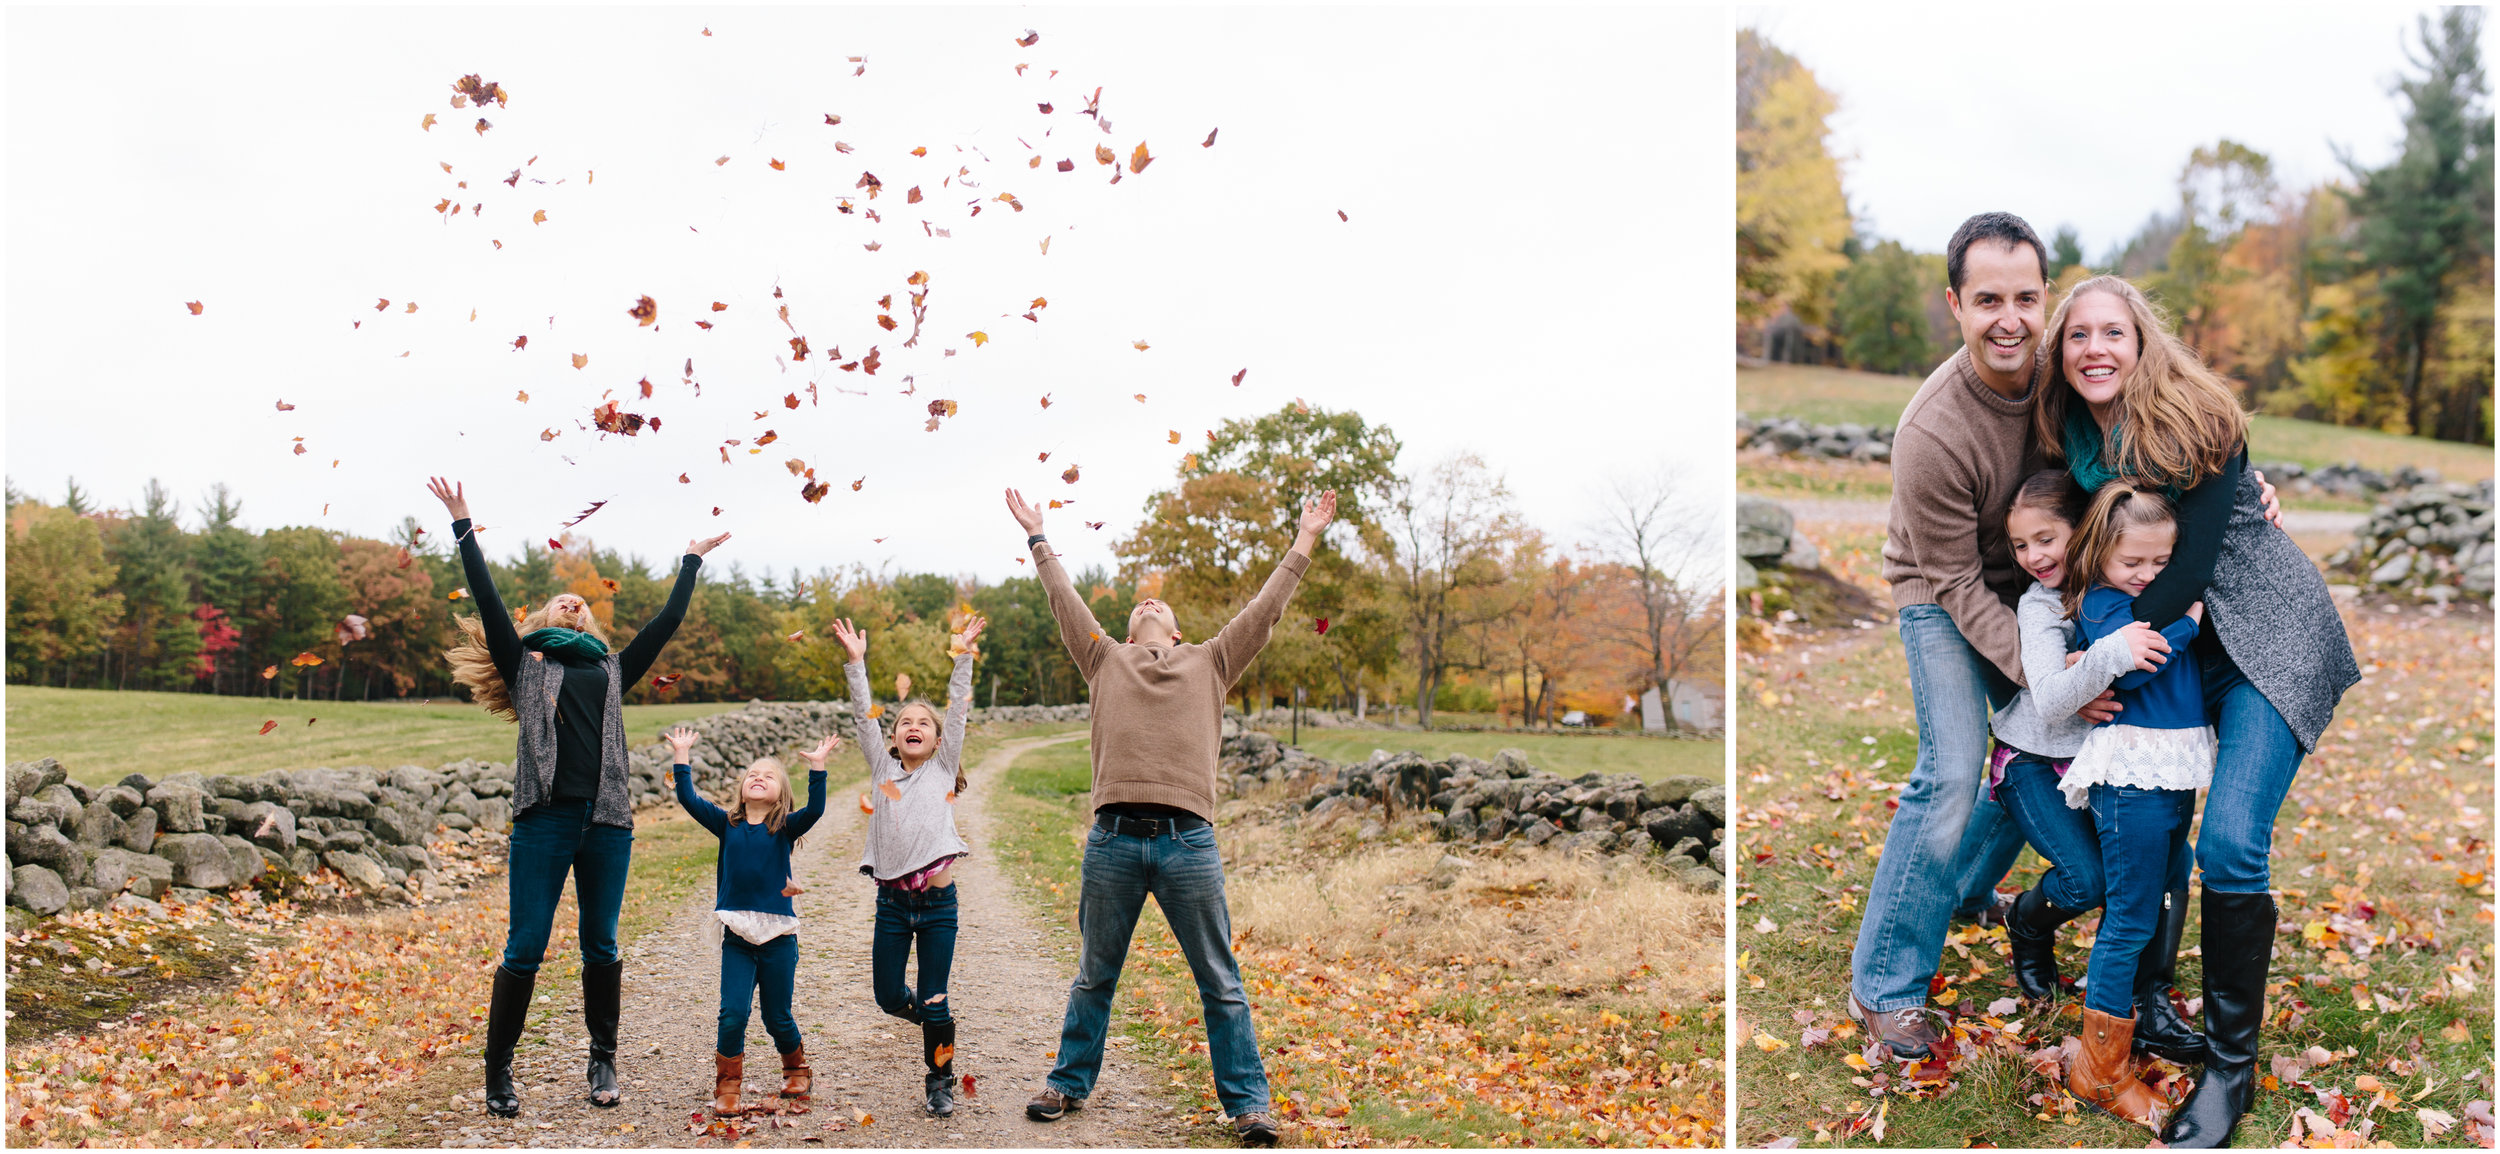 Monson Village Center family photography in Milford, New Hampshire leaves fall autumn